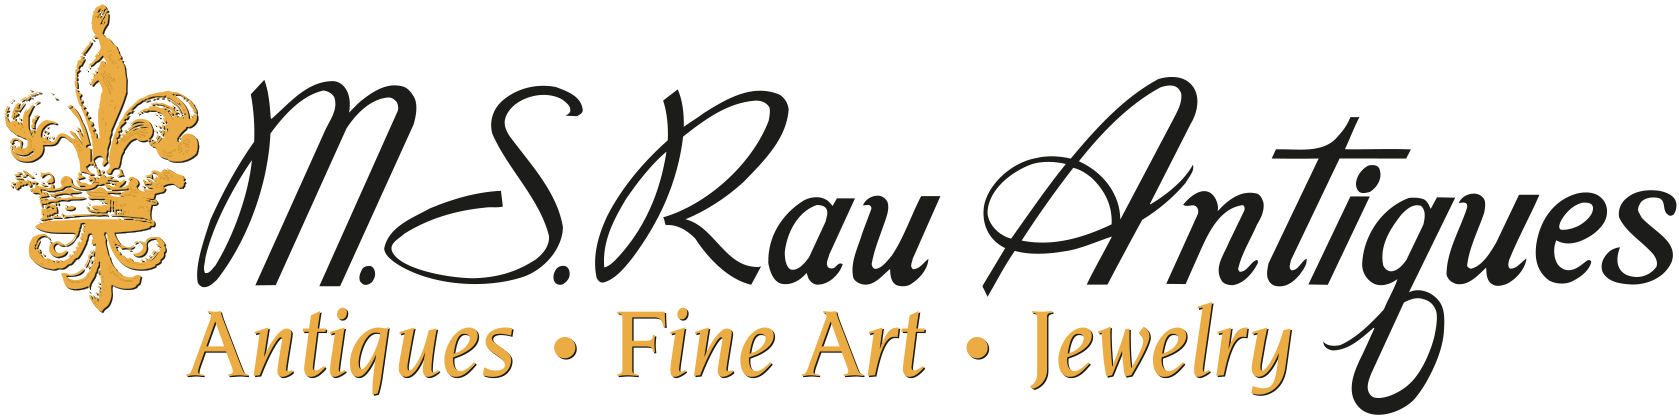 Rau logo color_shadow.png